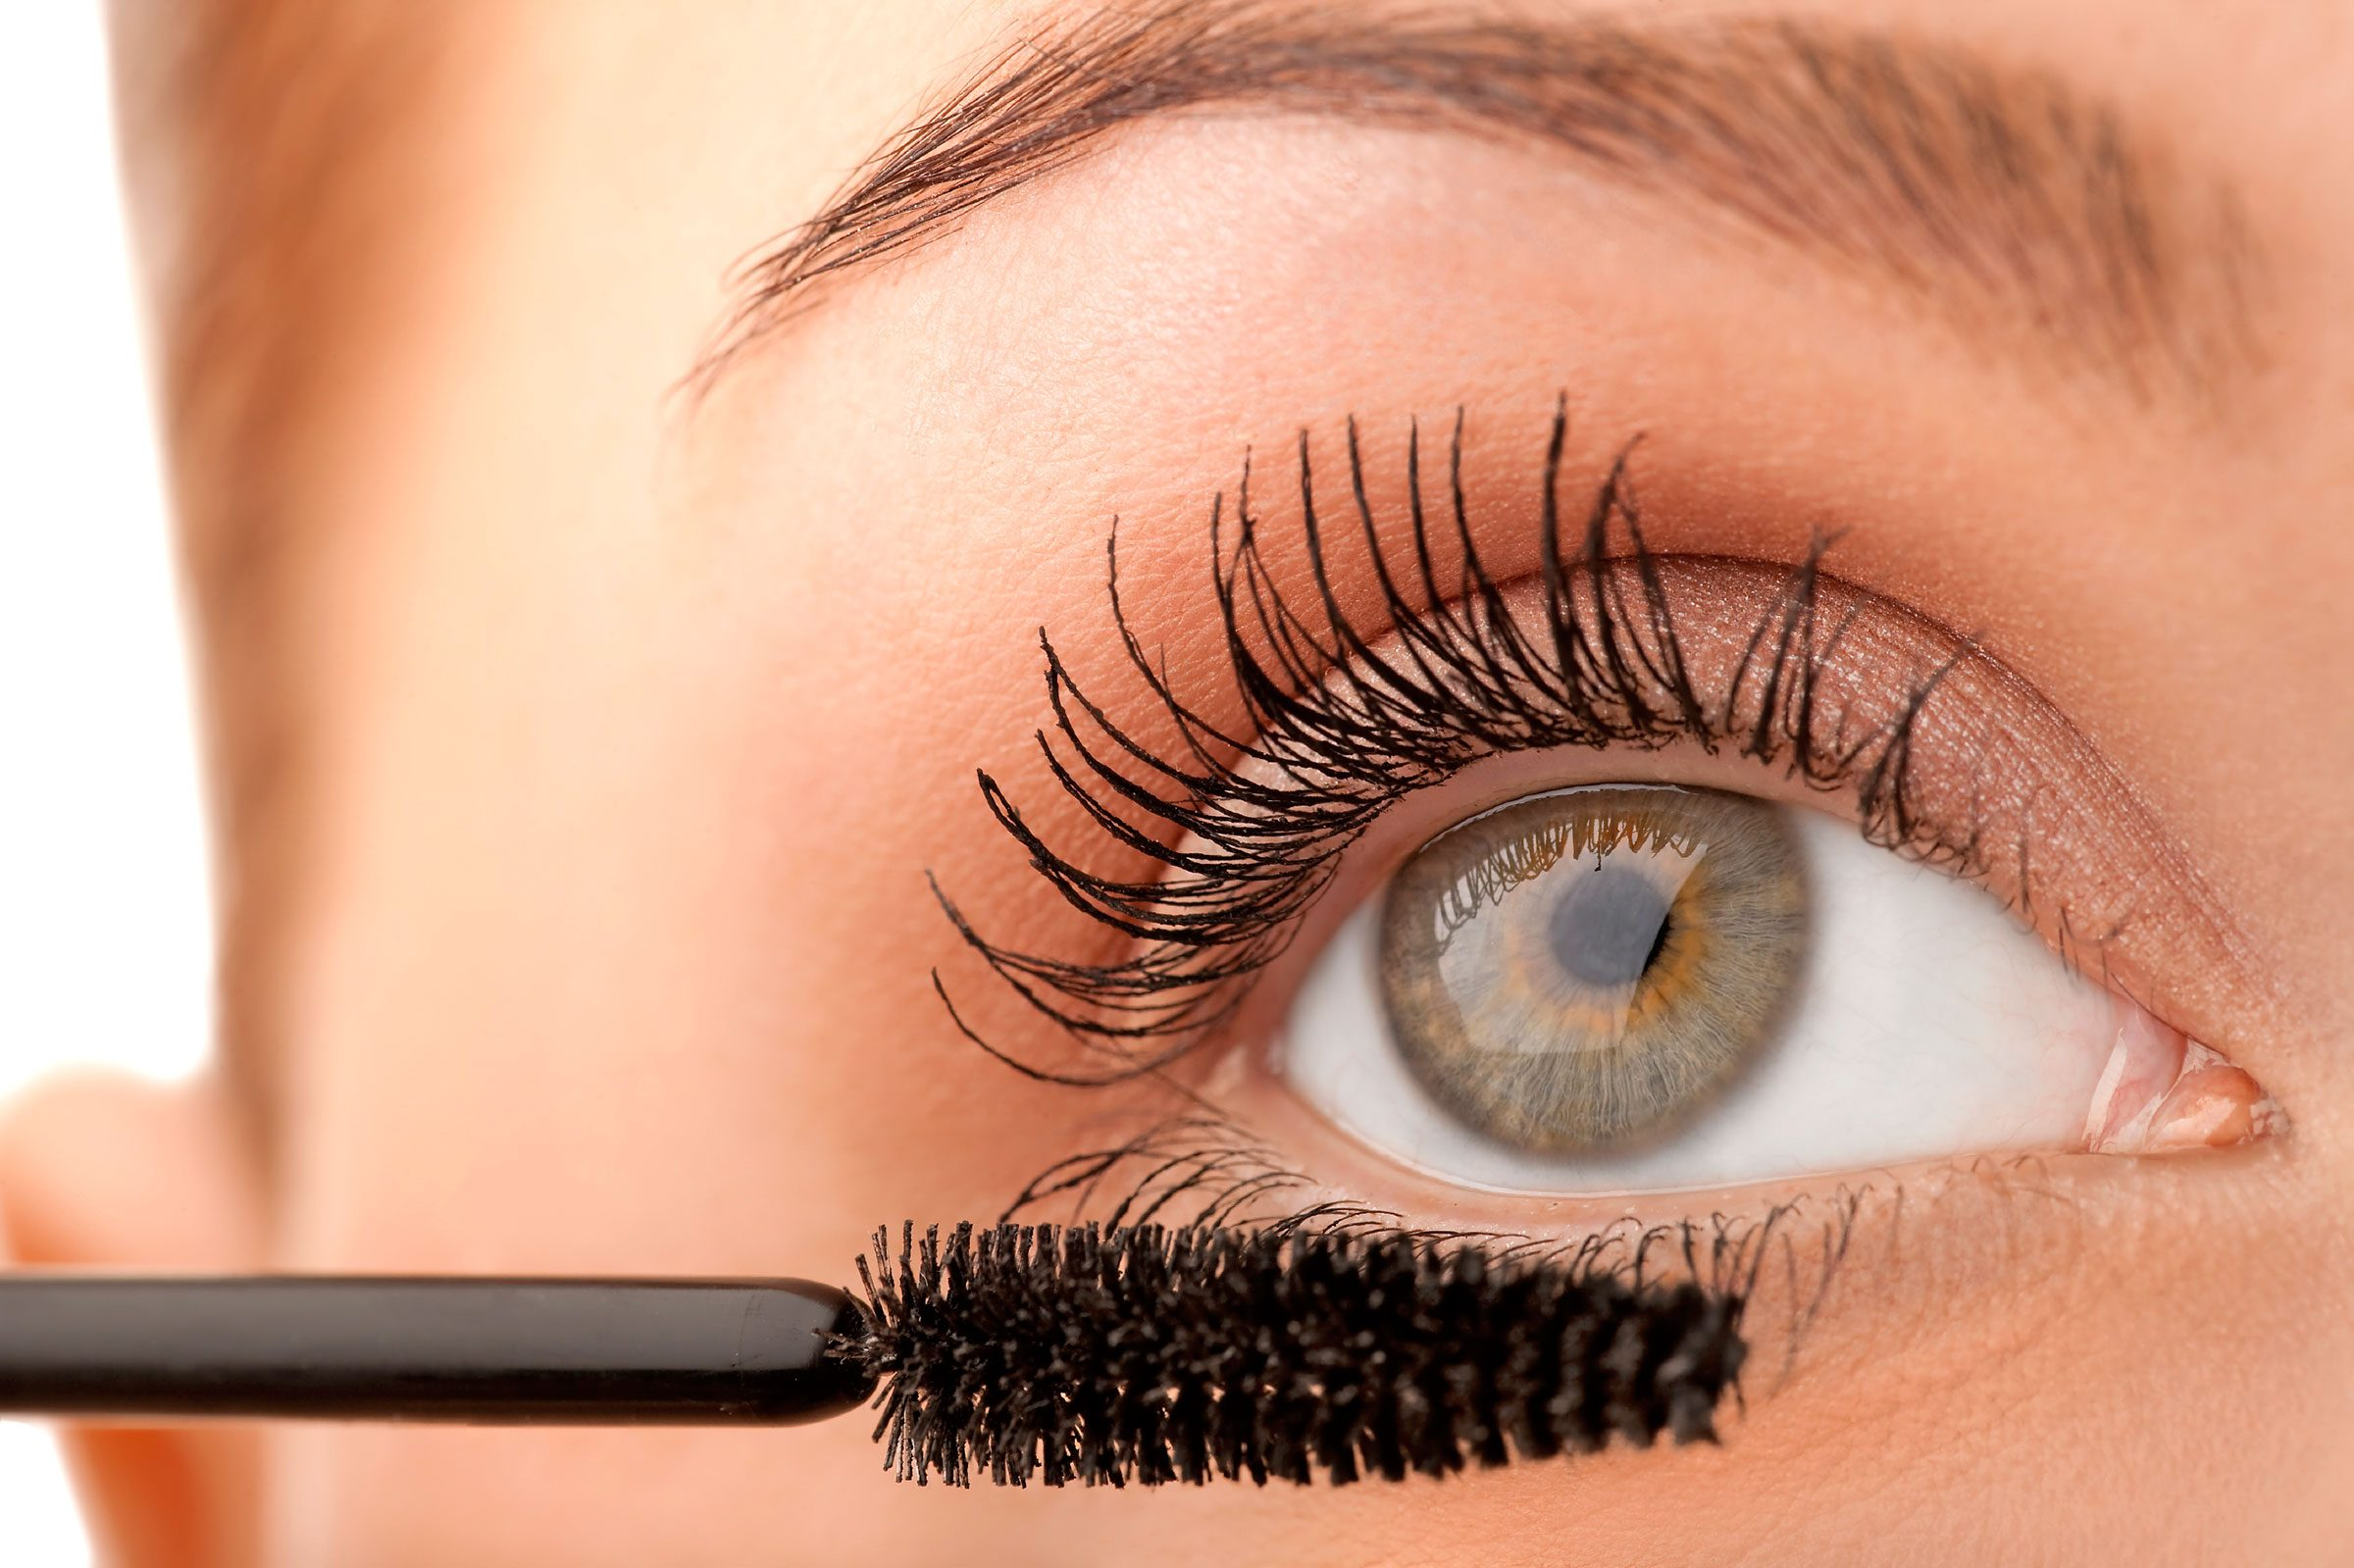 9. Get tinted lashes for less